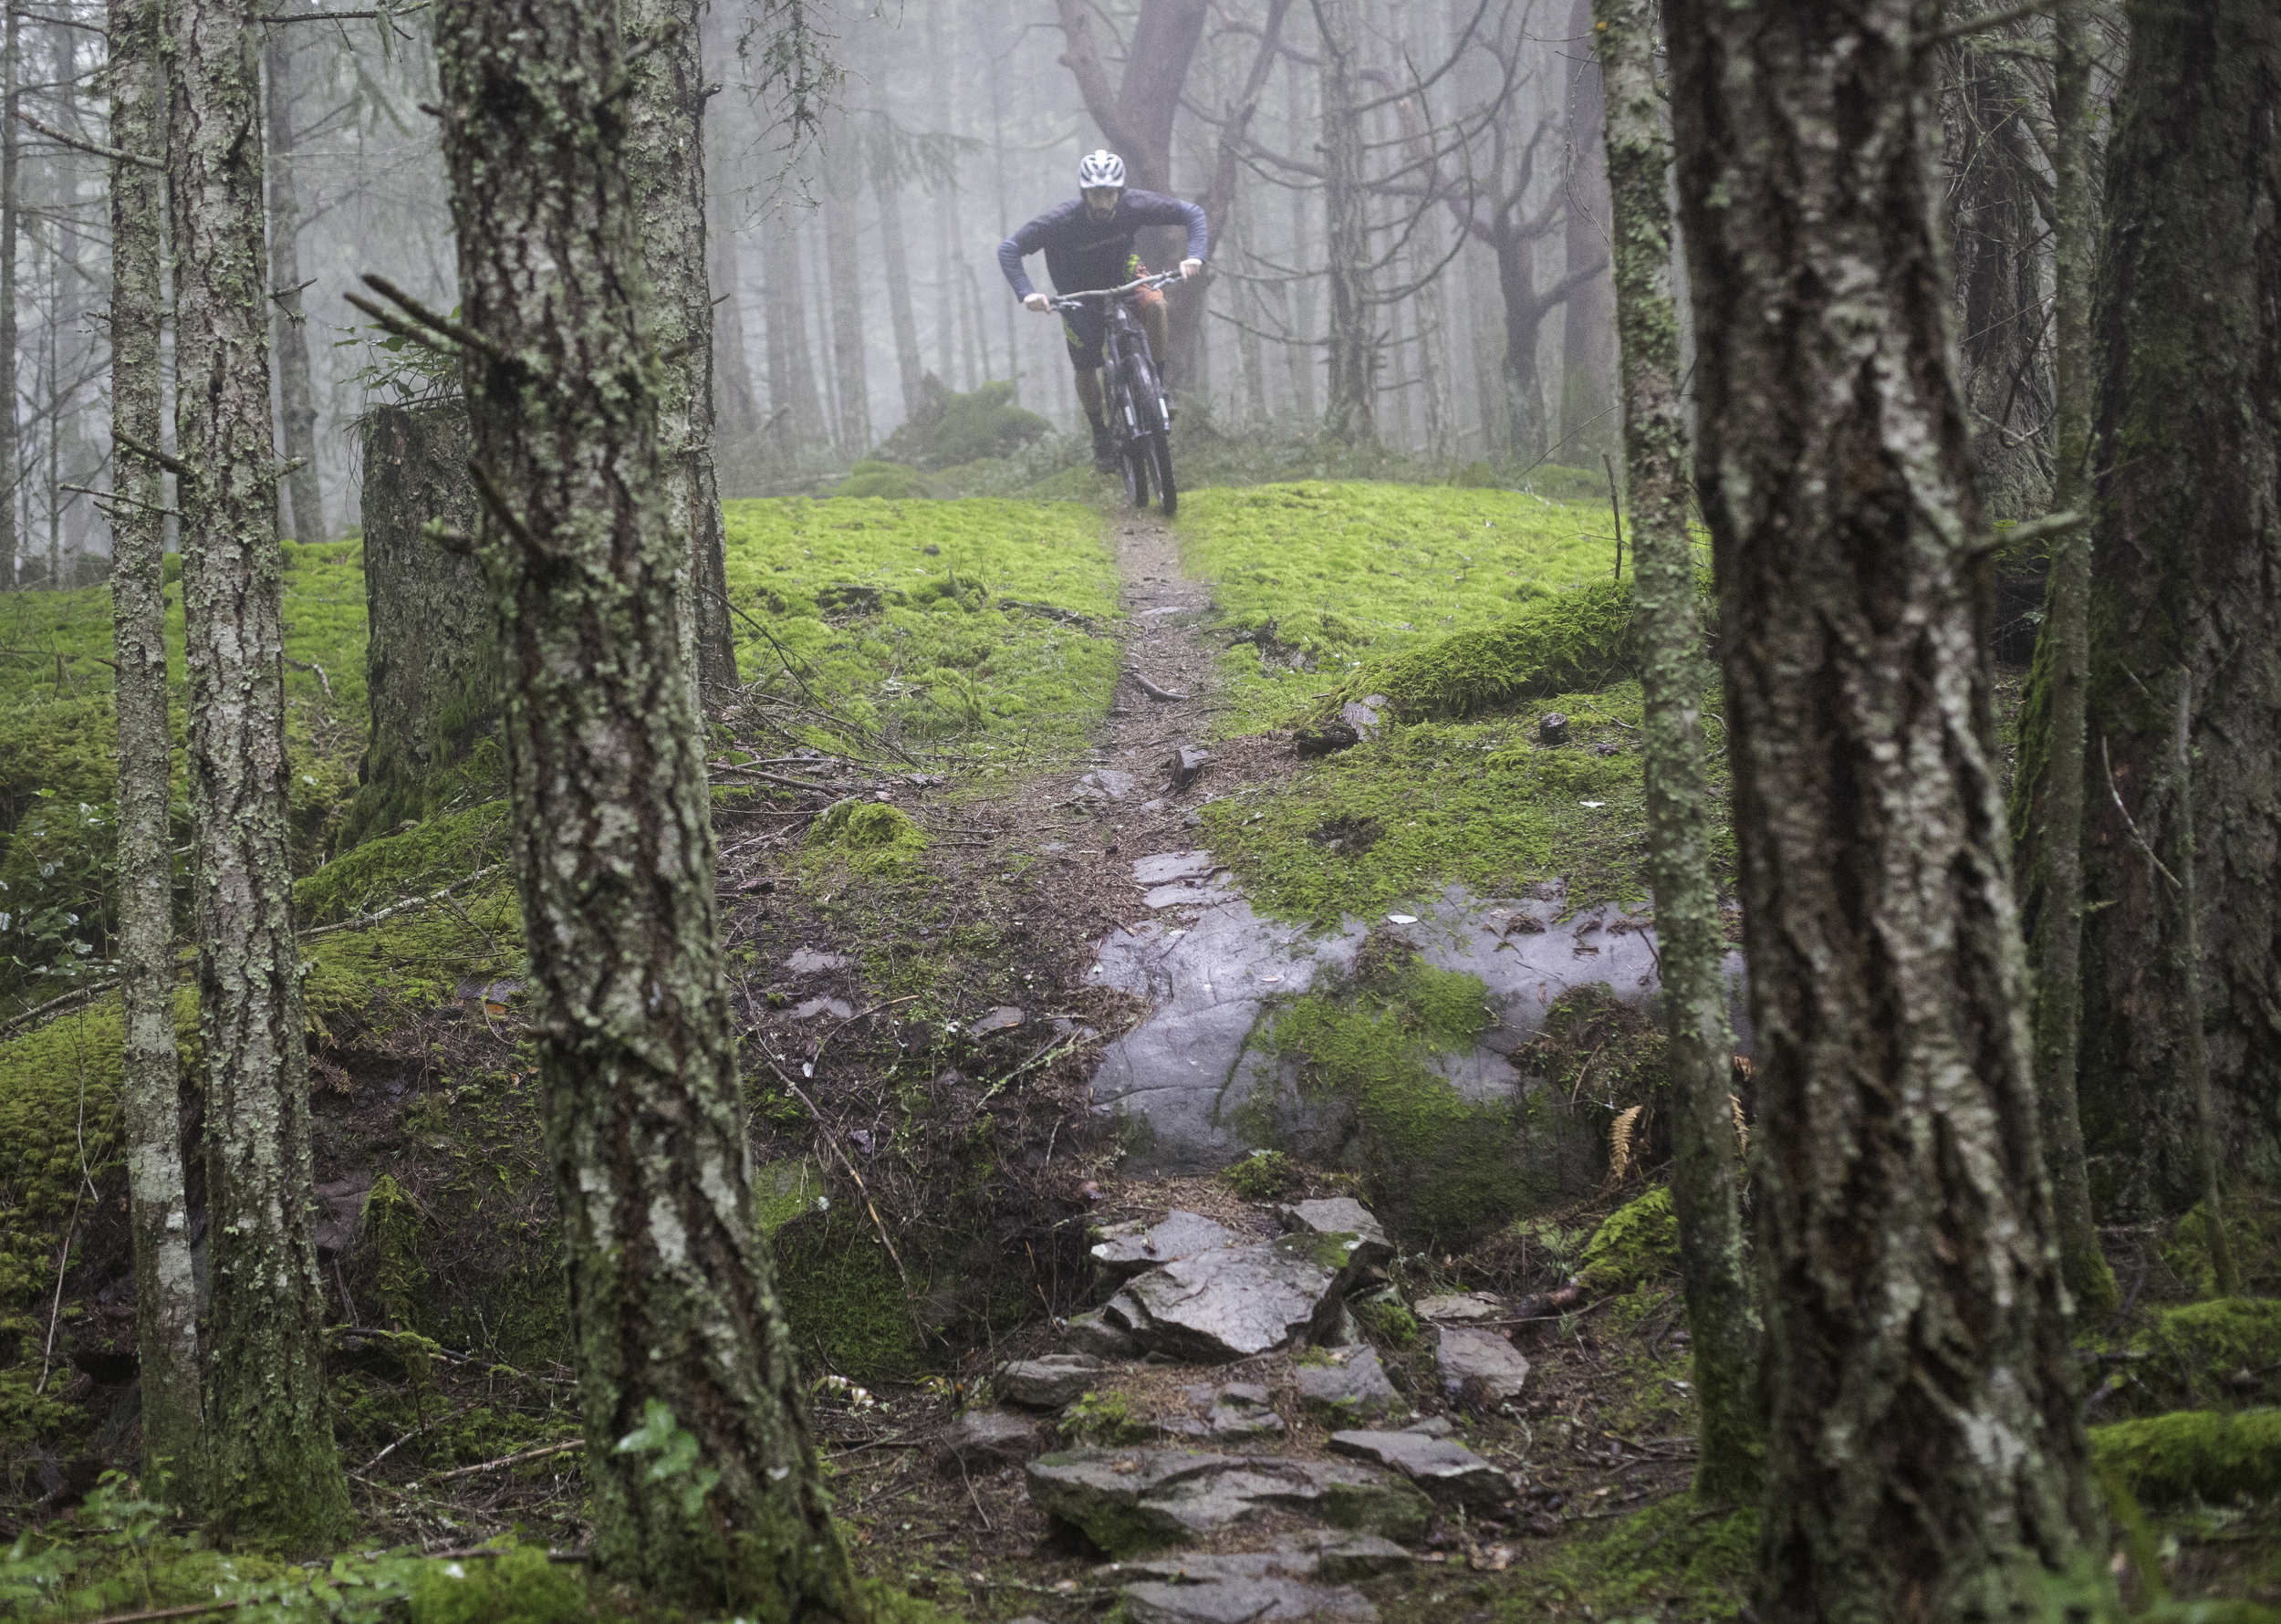 Dexter chasing single track in the mist.